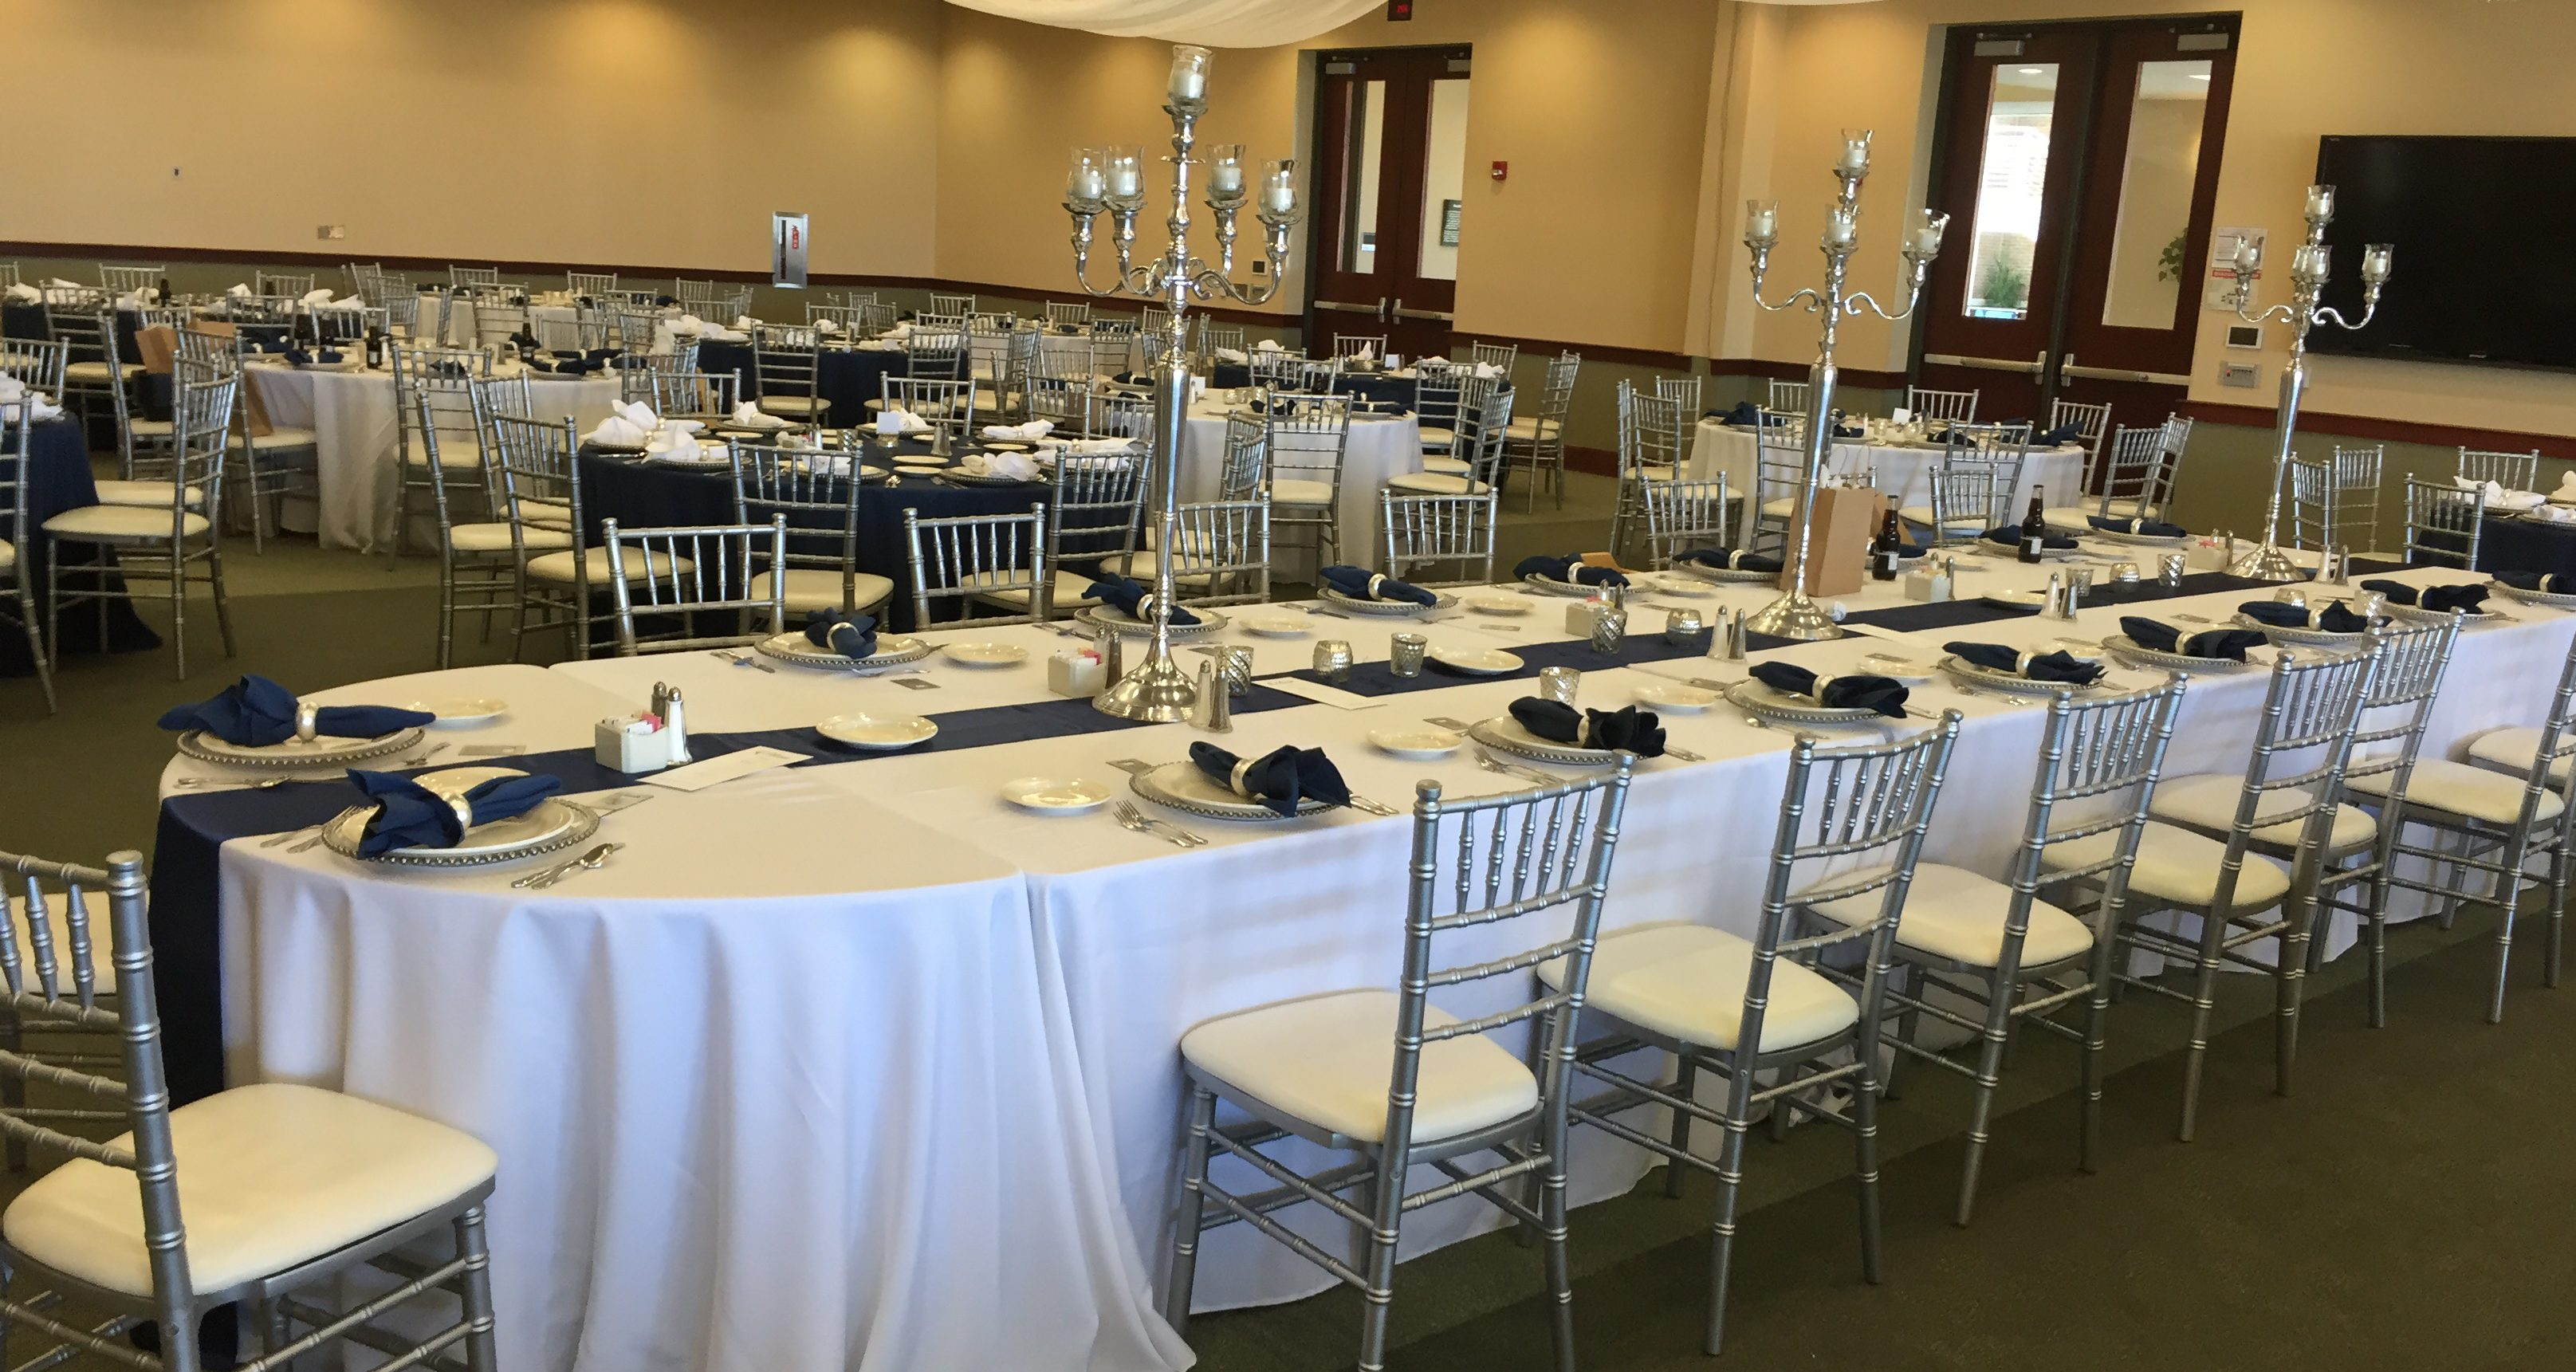 5 things you need to know when choosing wedding tablecloths 307 events